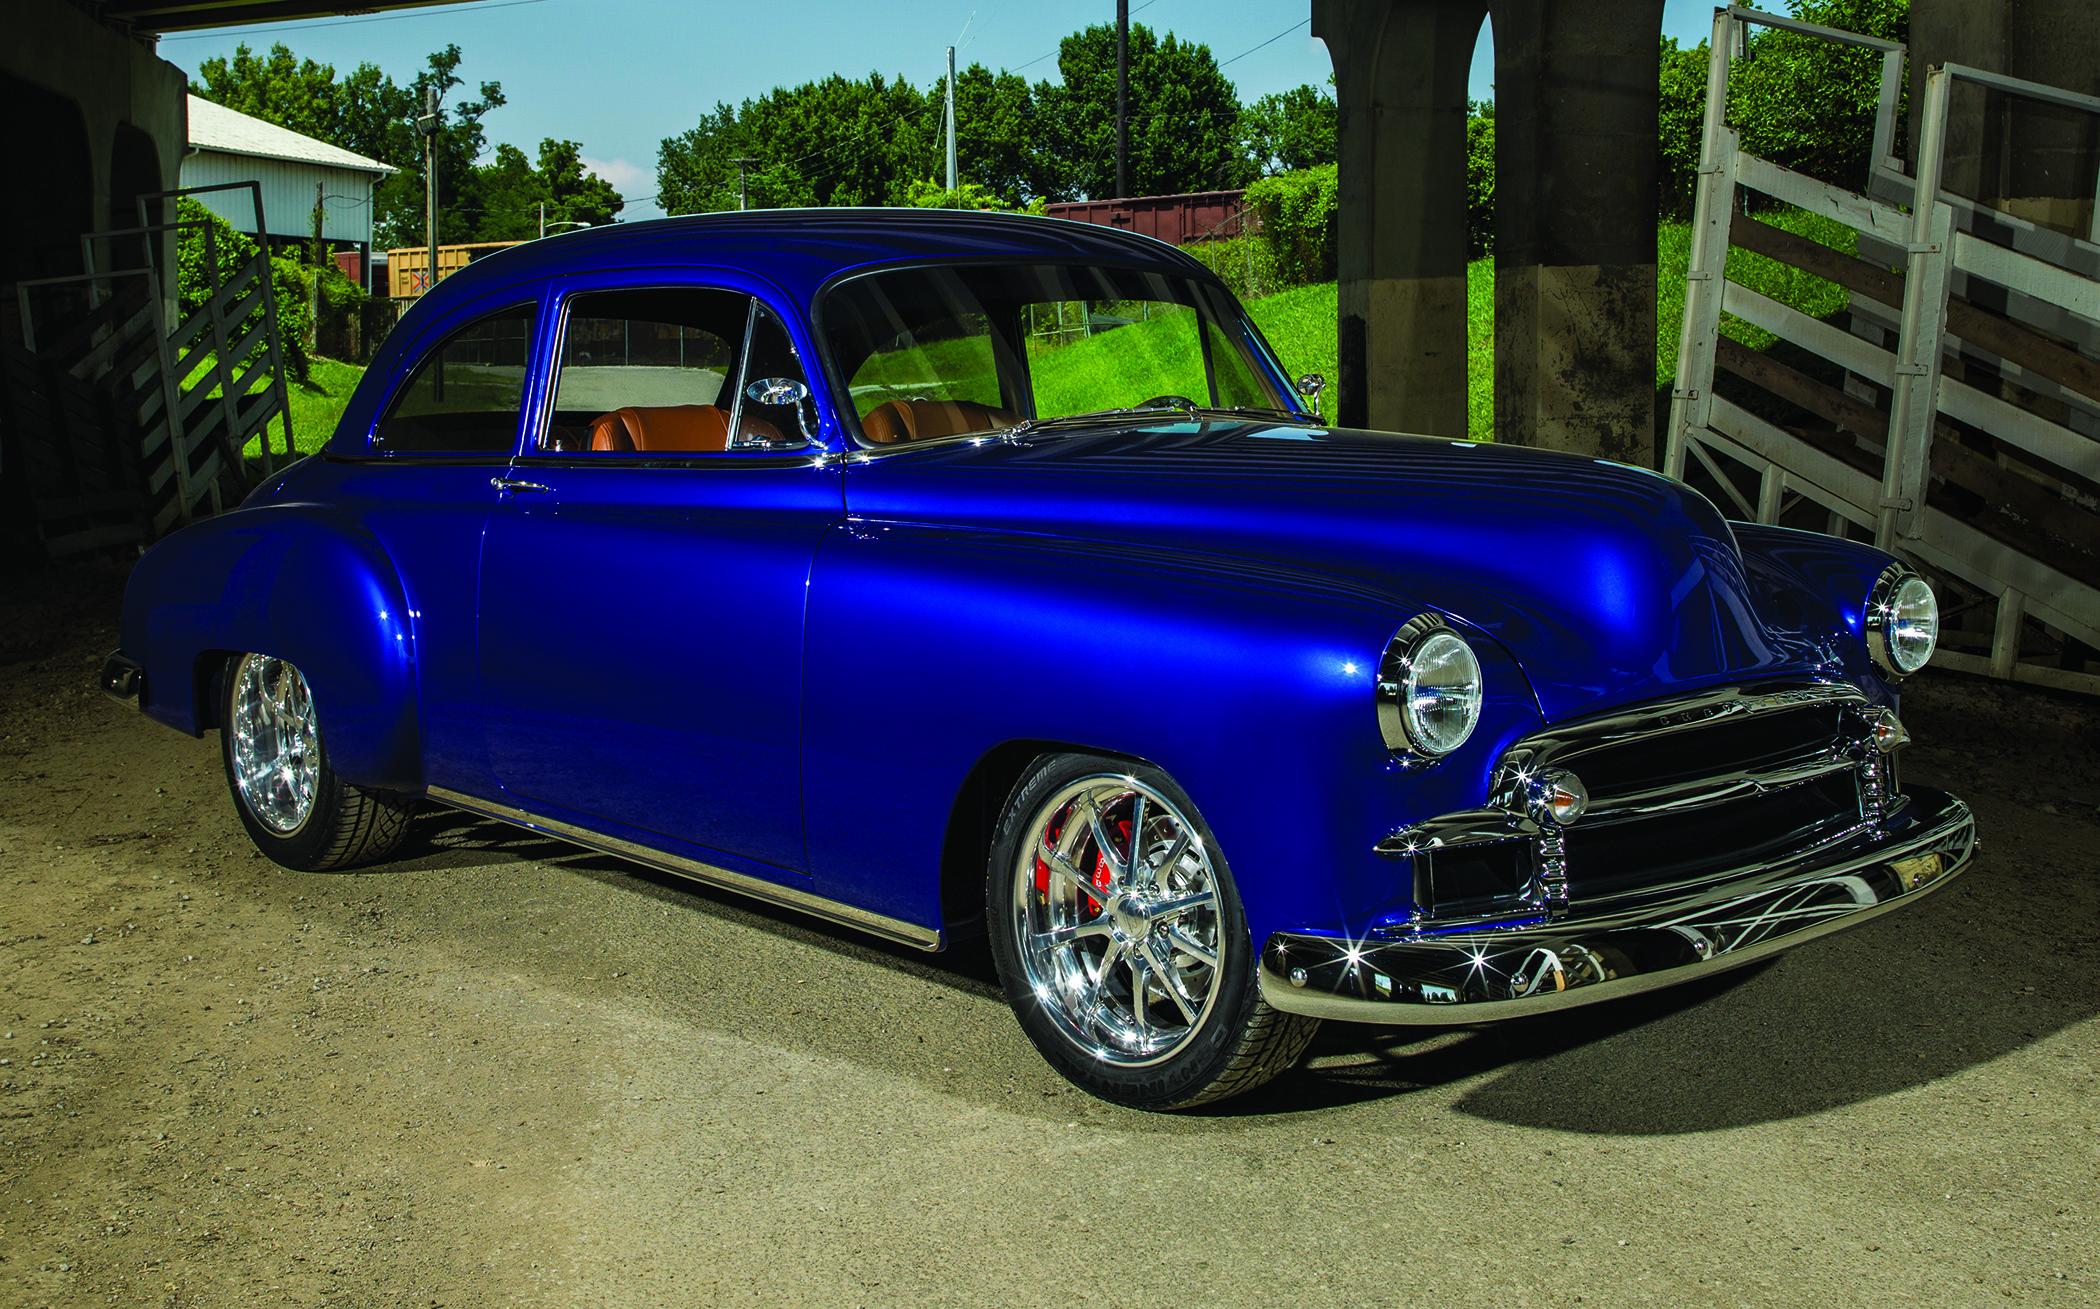 Ppg Best Use Of Color Awards Presented At Nsra Nat Ppg